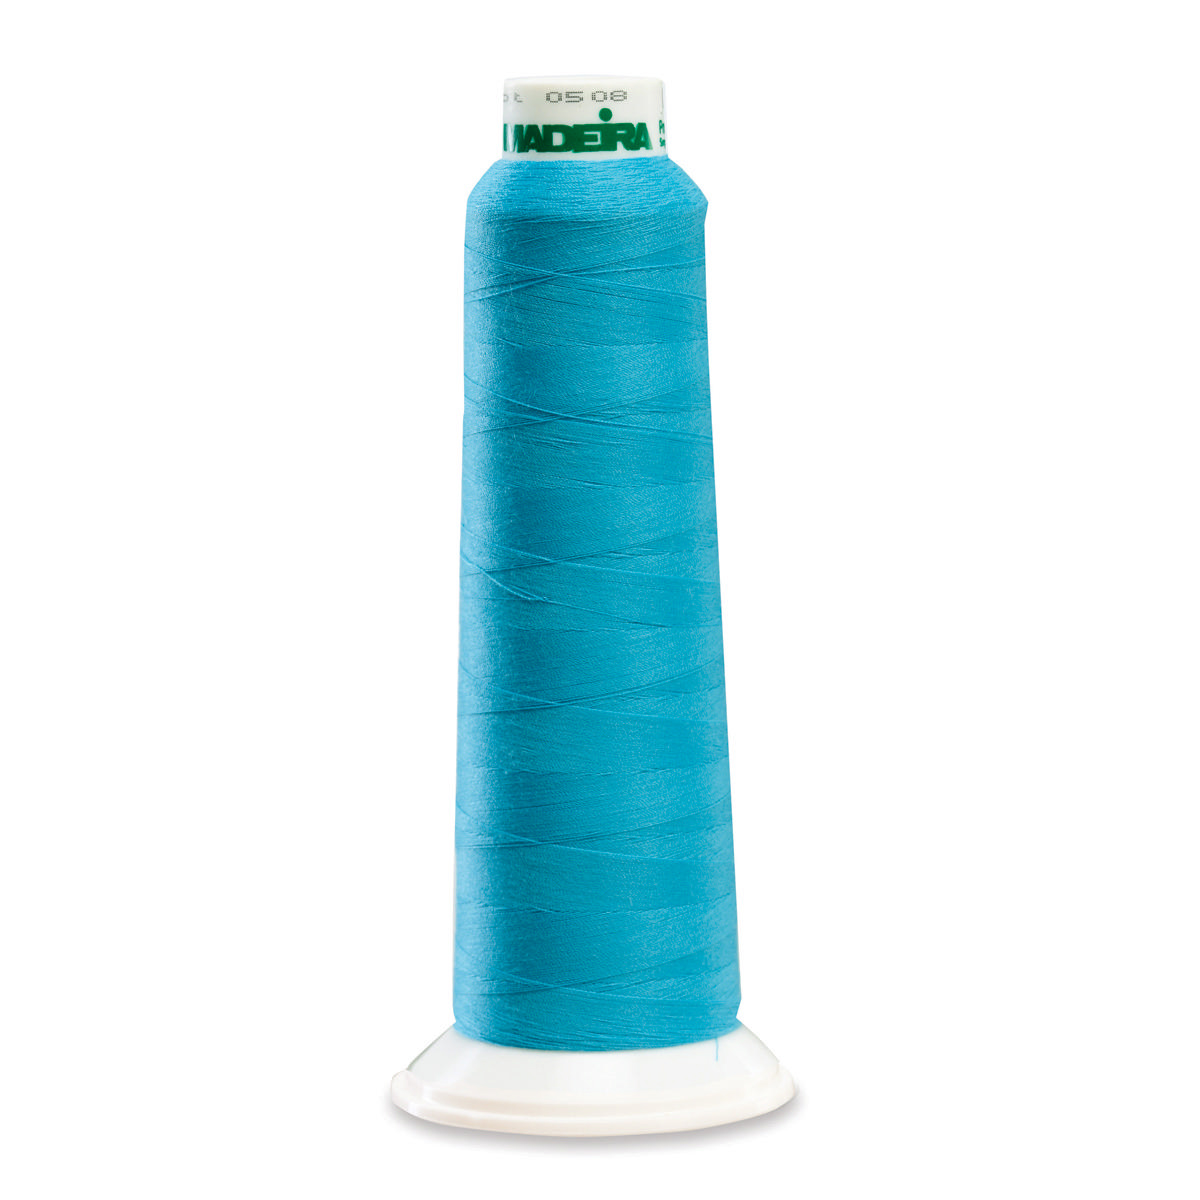 9892 Bright Turquoise Poly Serger Thread Madeira Aerolock